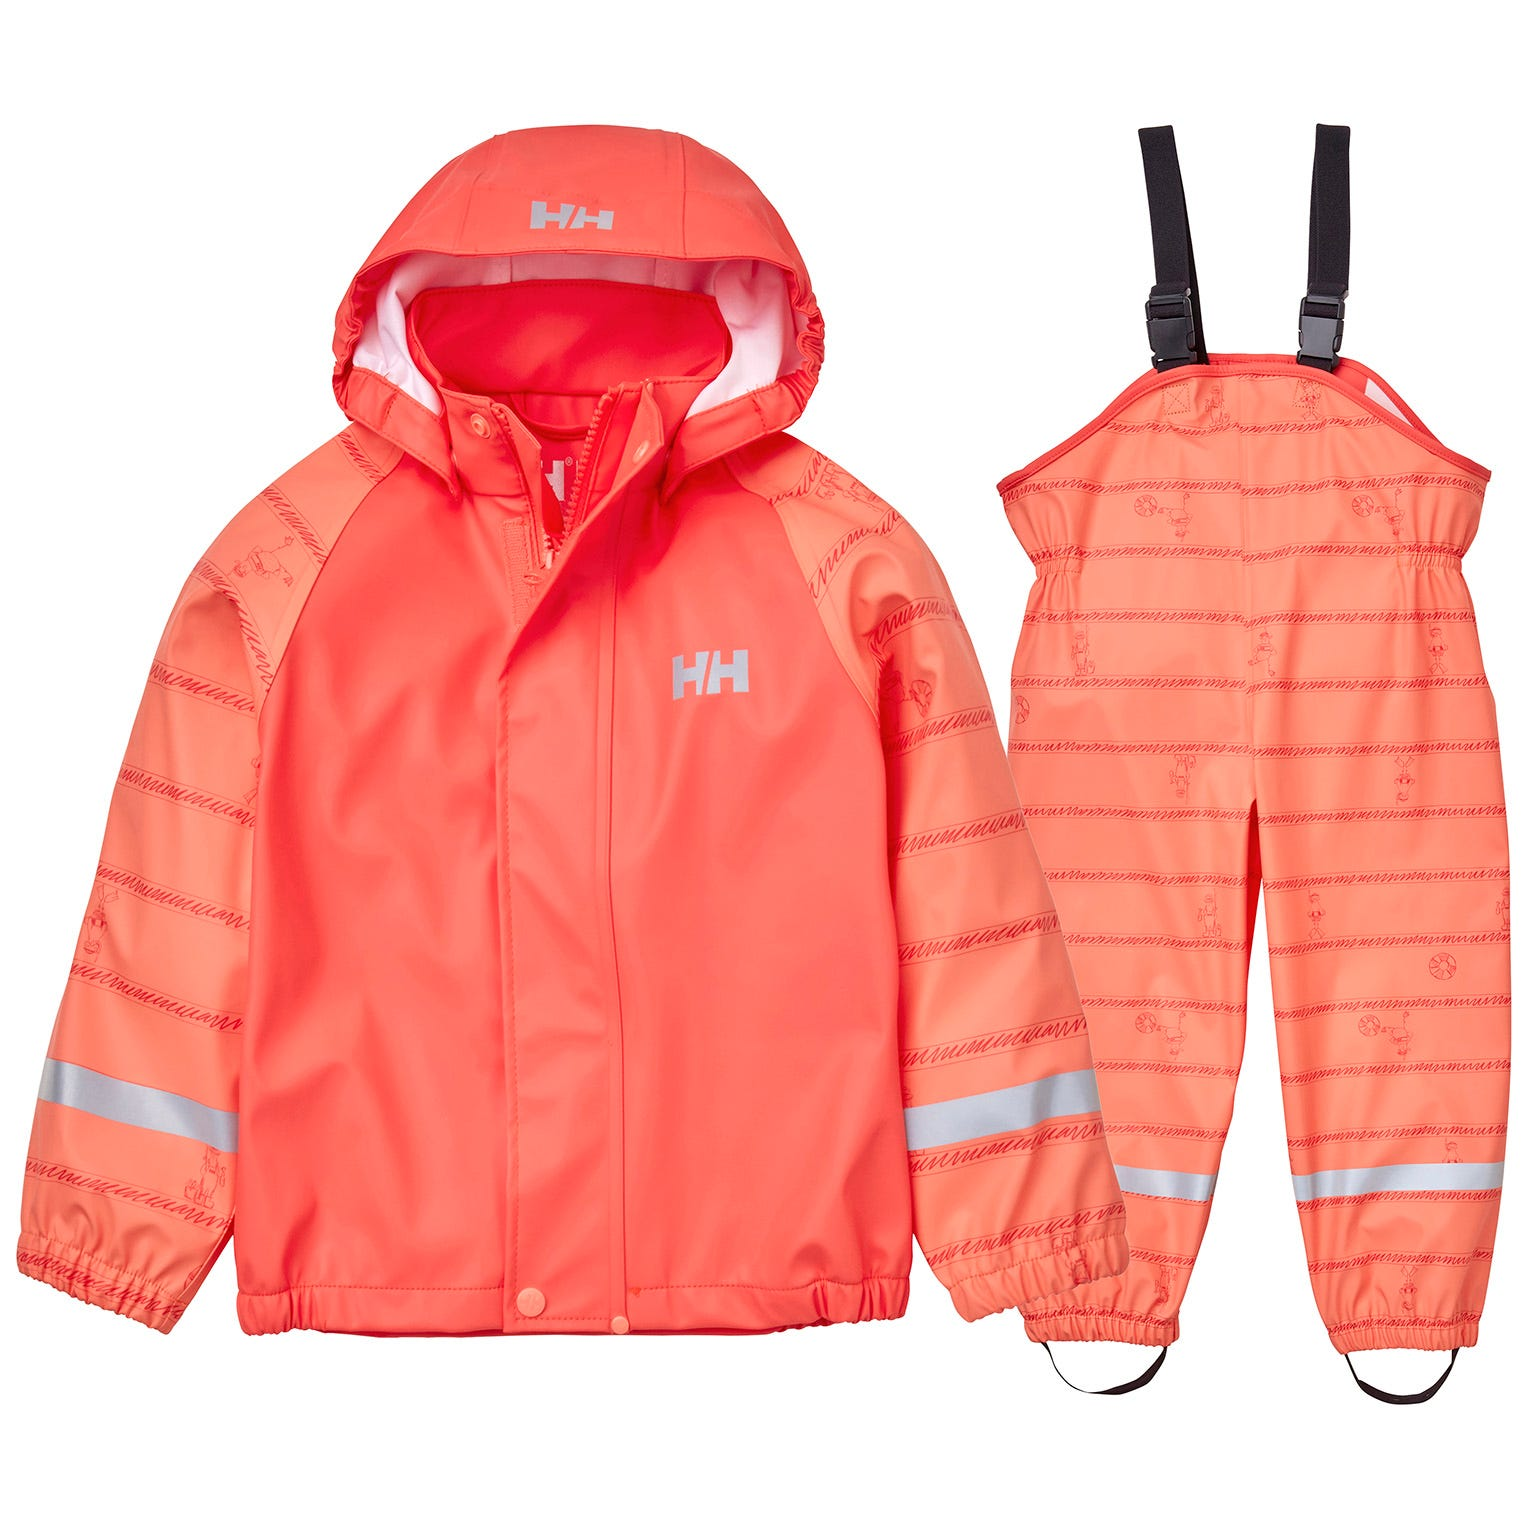 Rigging Rain Jacket